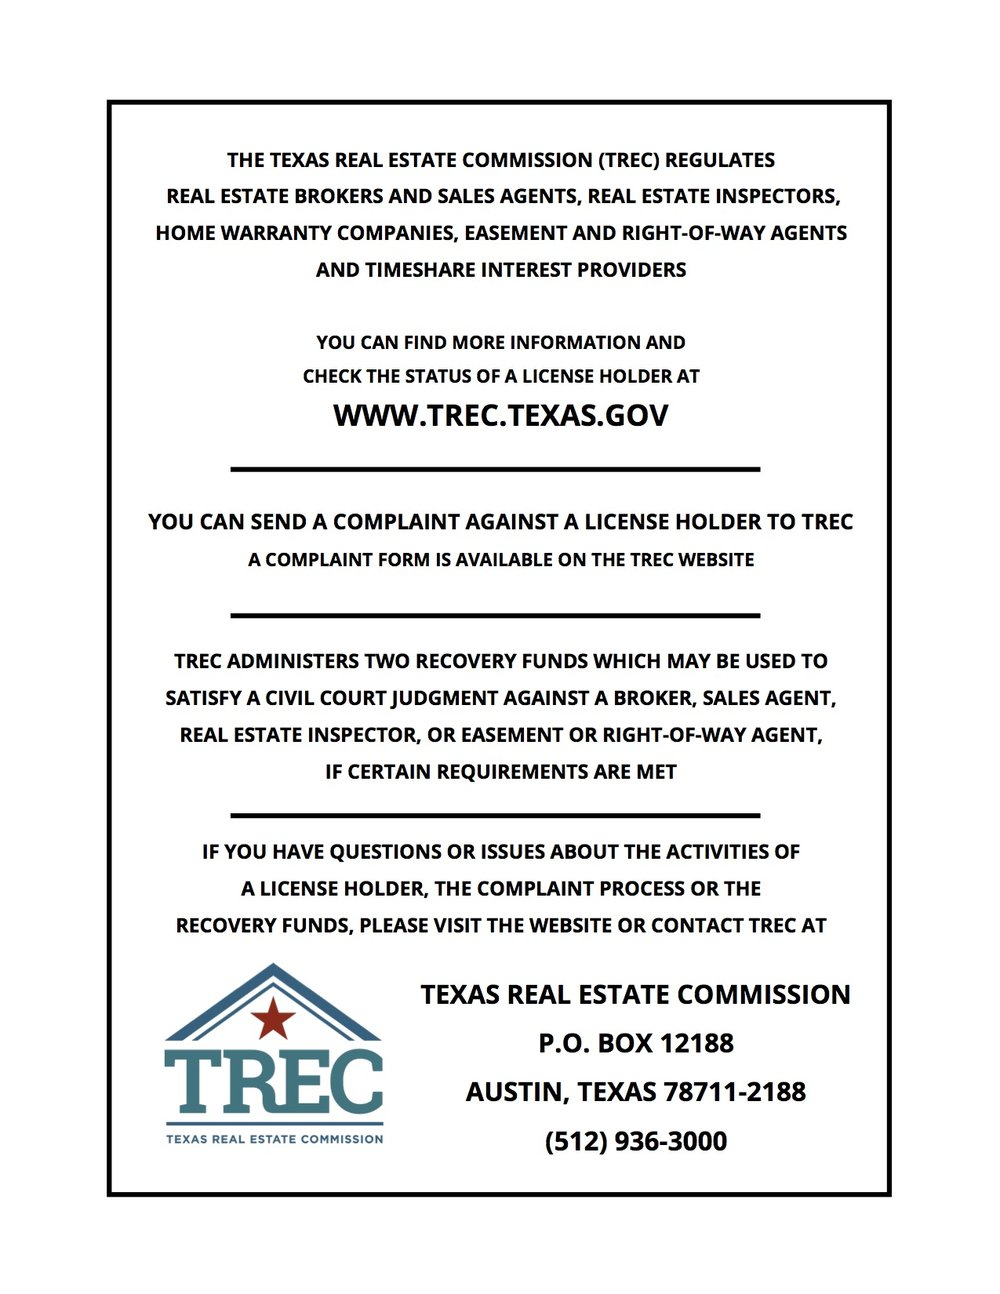 TREC Consumer Protection Notice.jpg